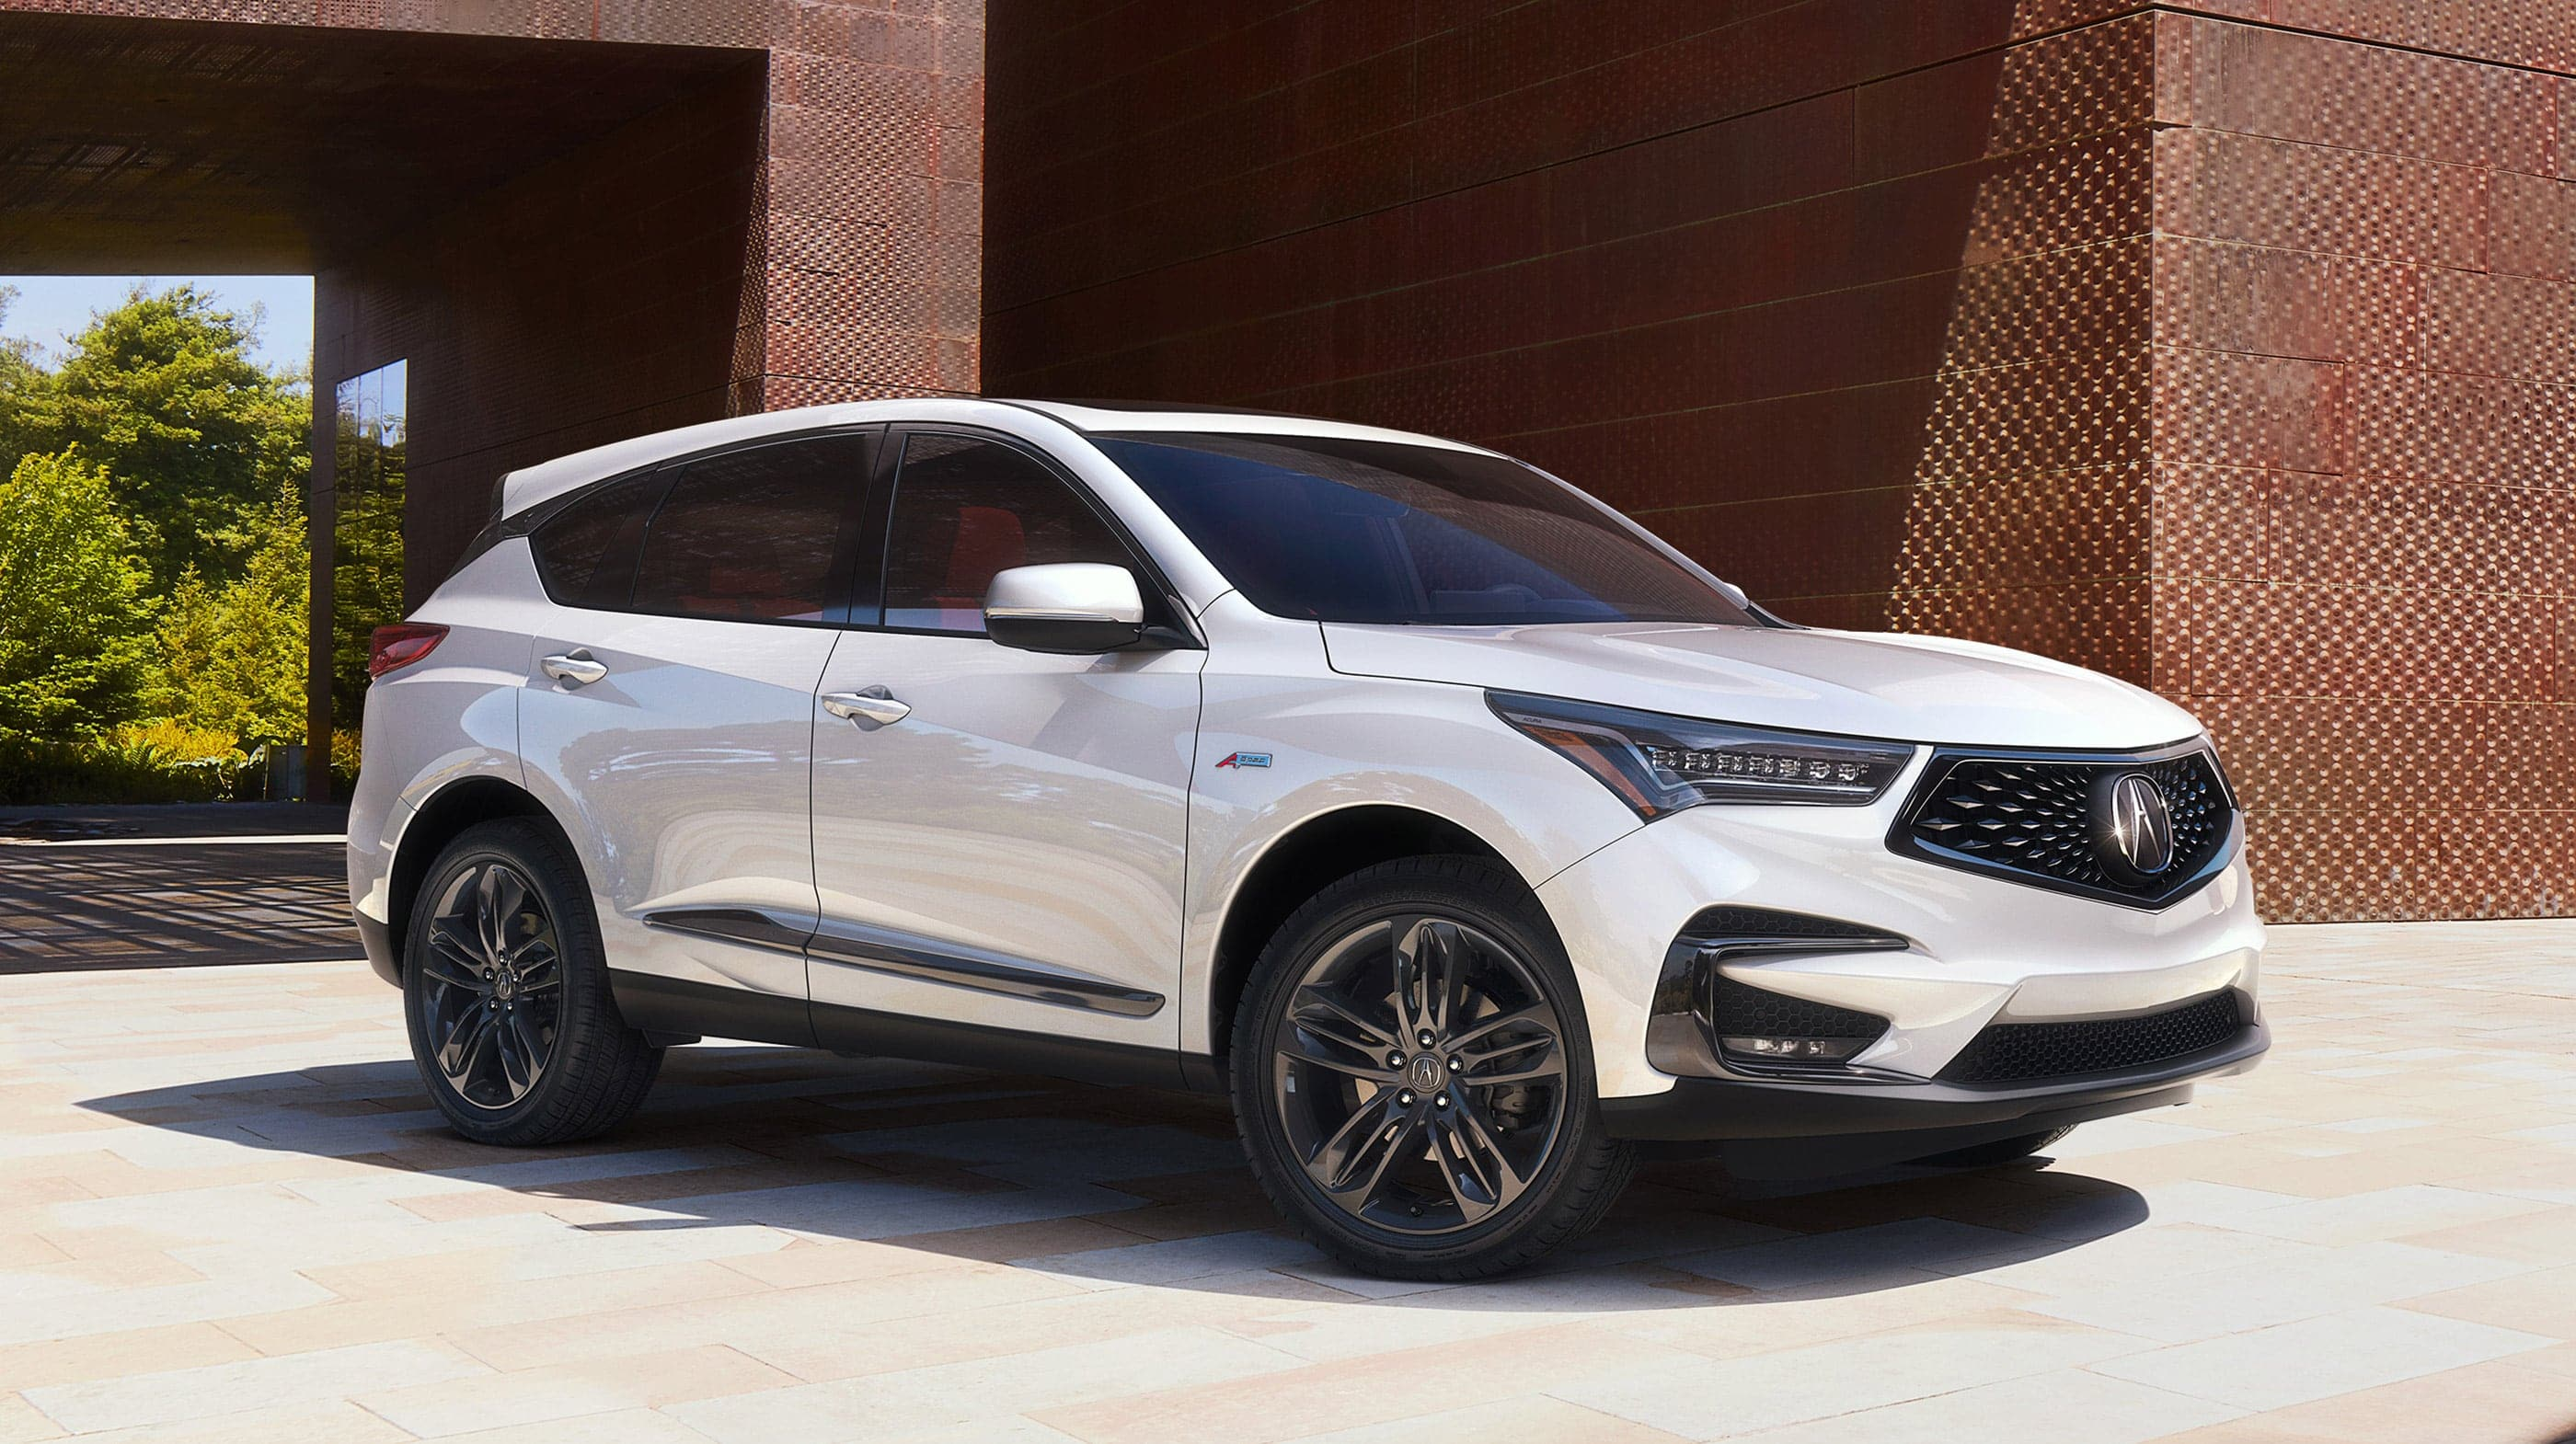 2020 Acura RDX Key Features near Chicago, IL